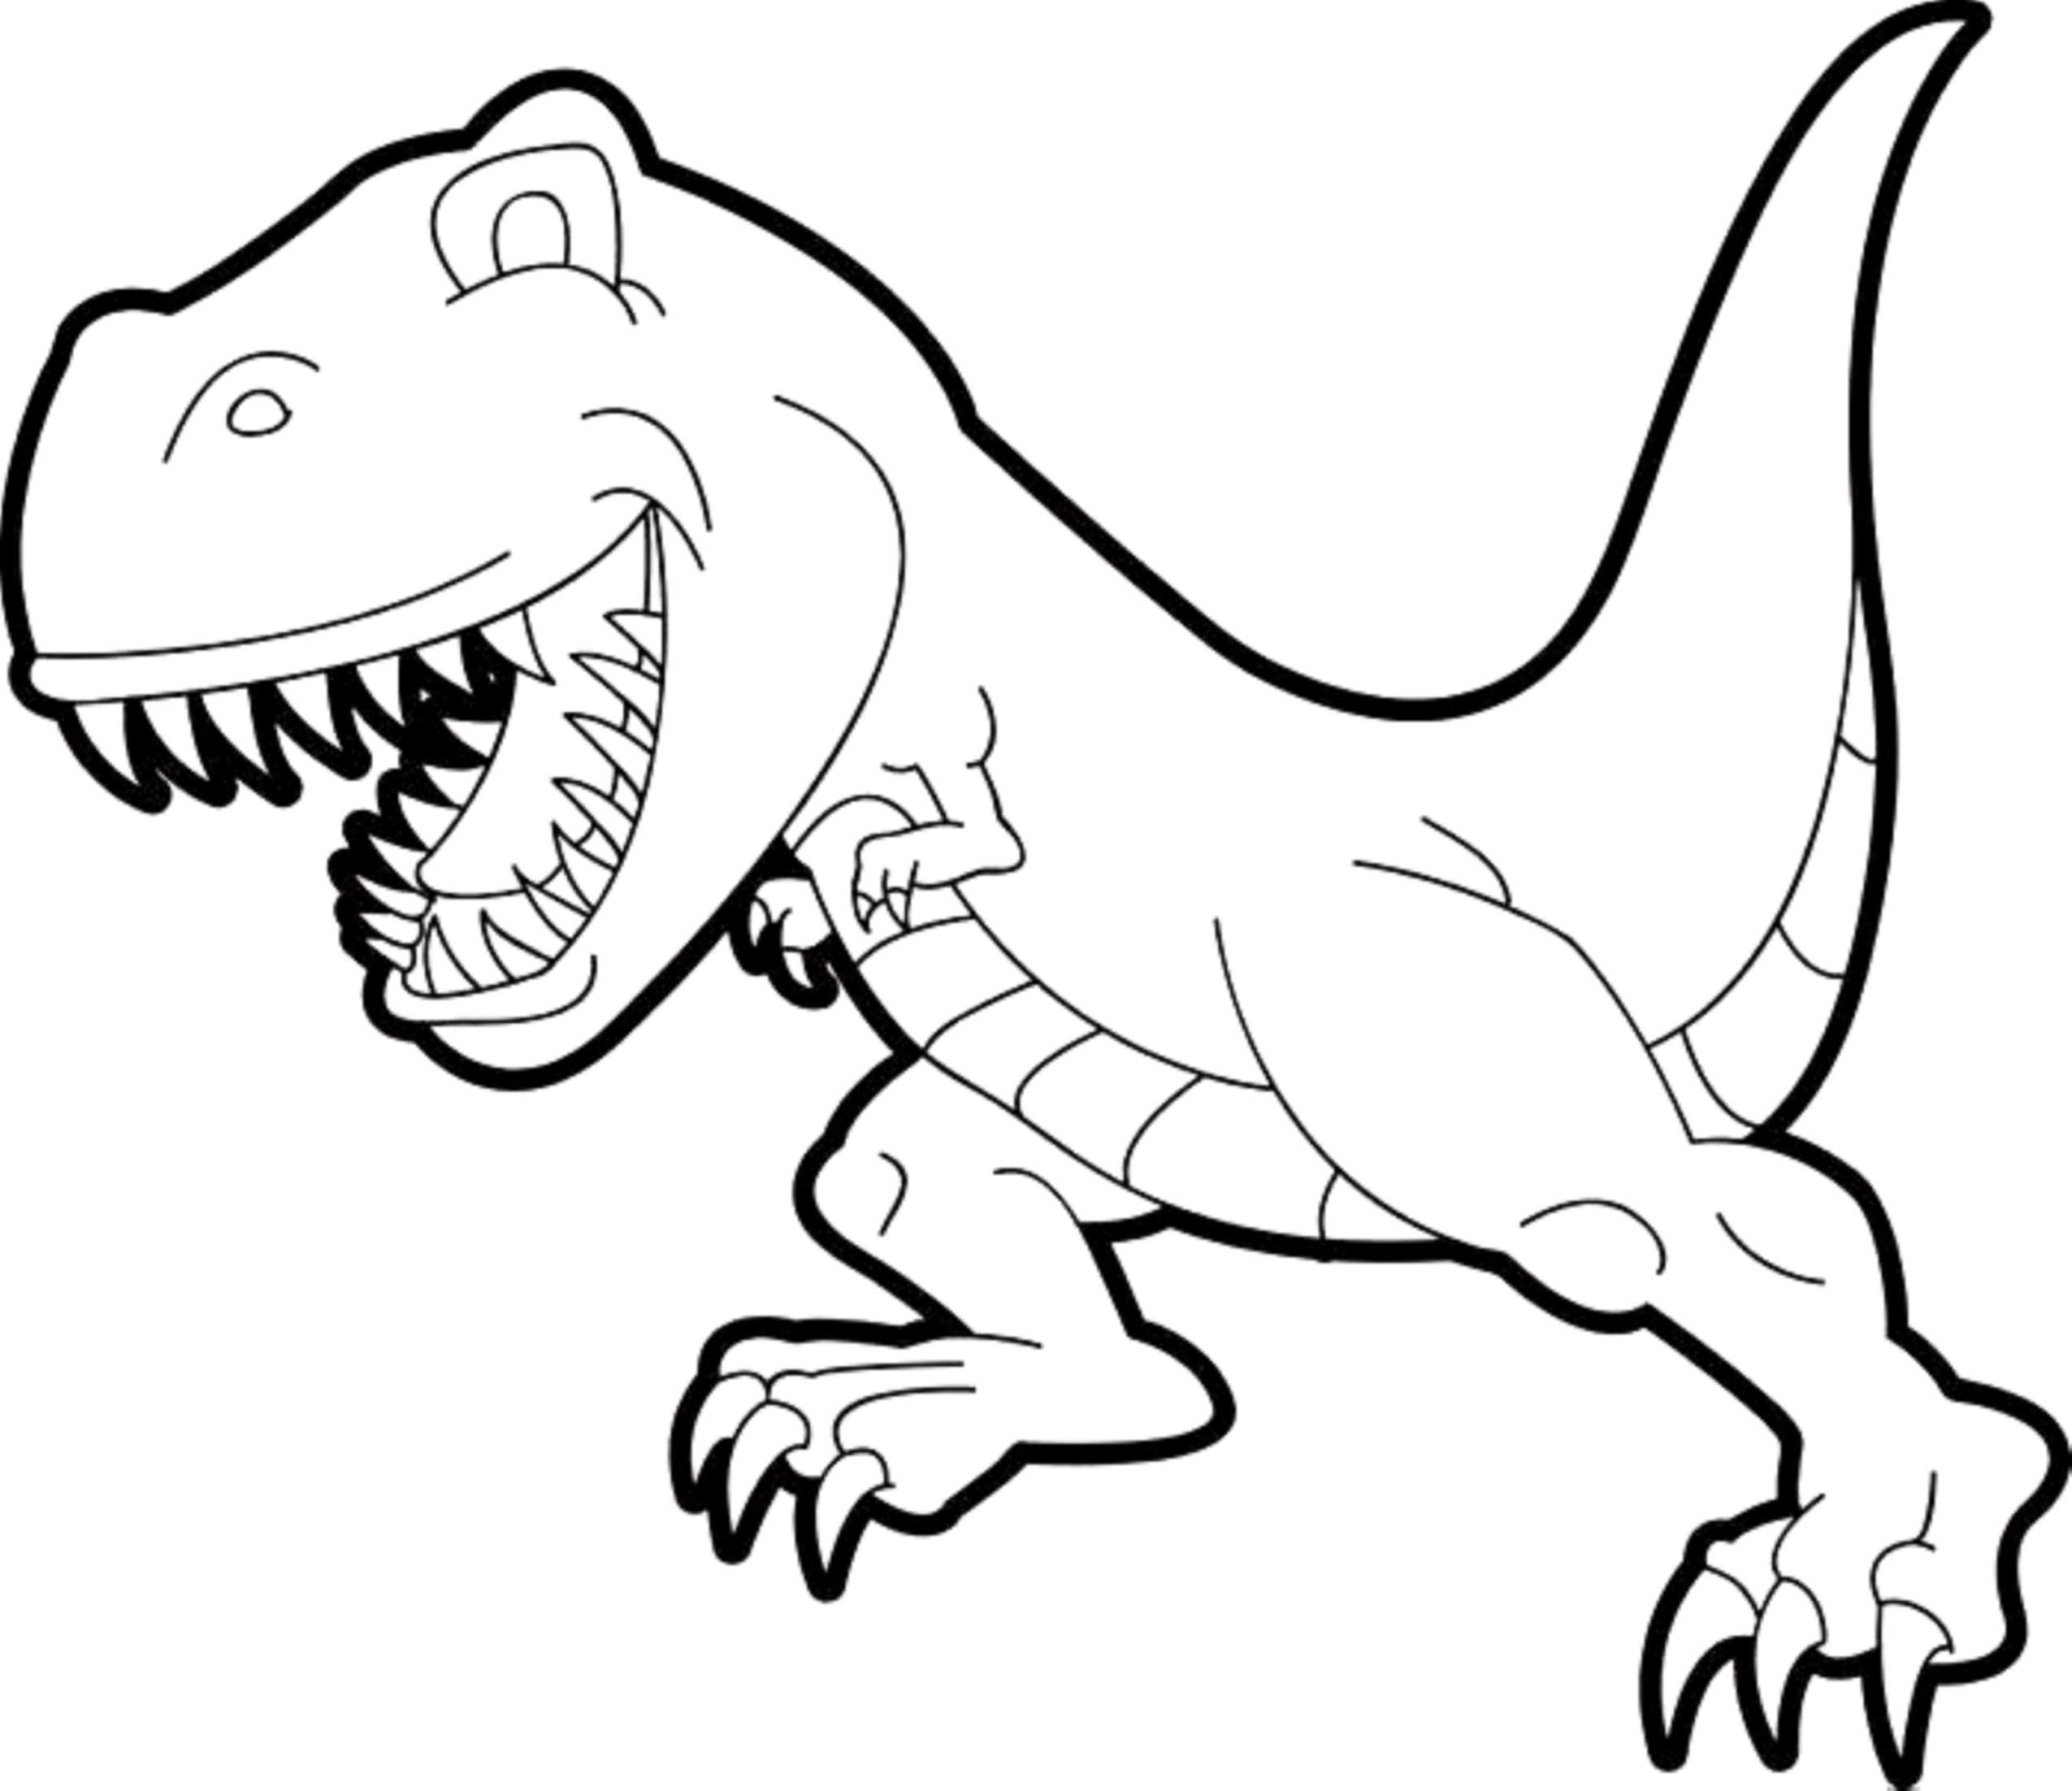 2550x2204 Simple T Rex Drawing Dinosaur Coloring Pages Trex